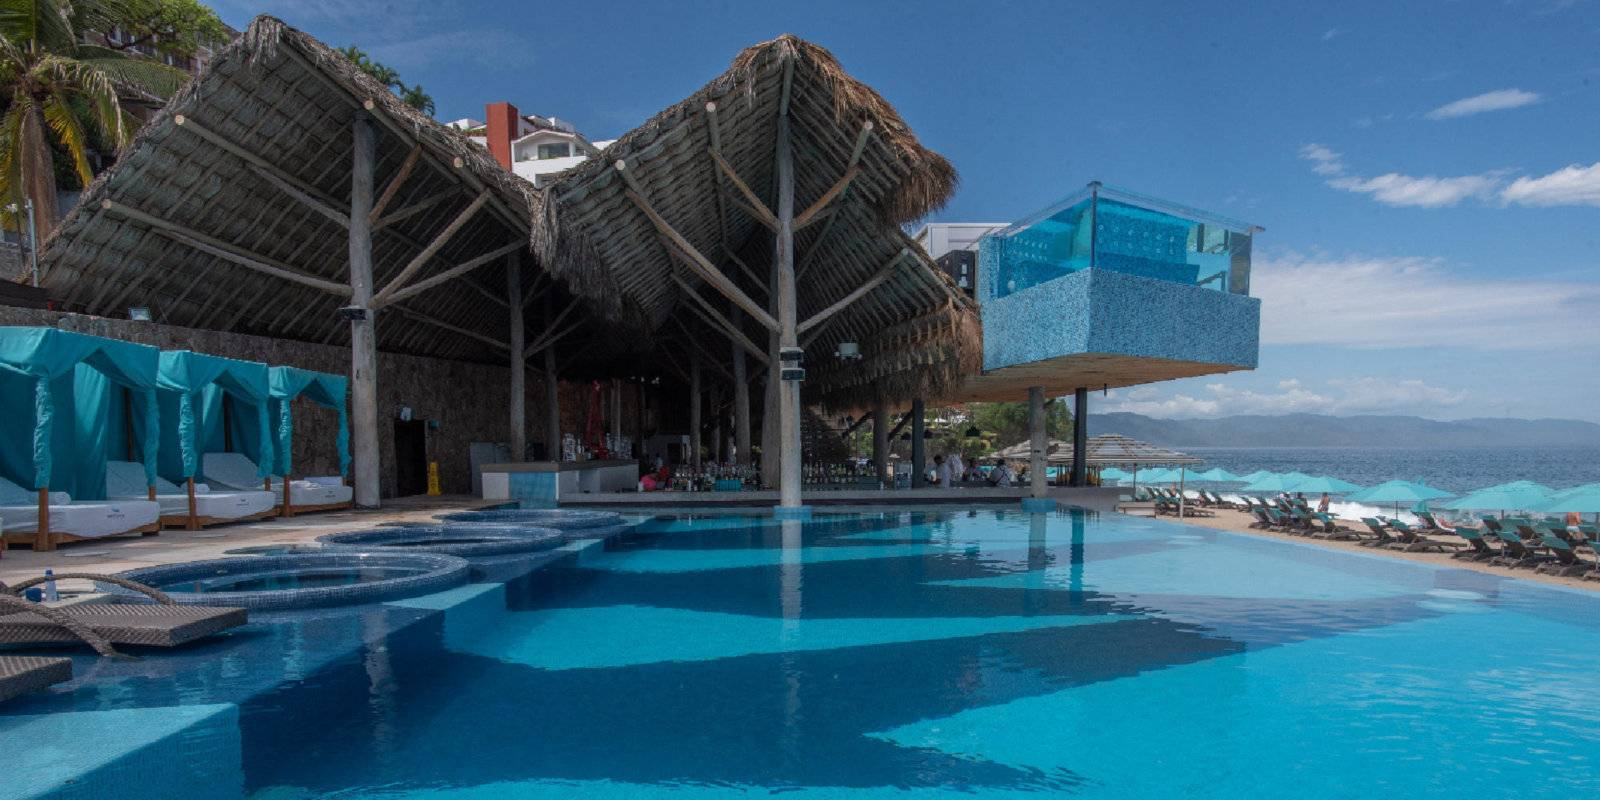 Puerto Vallarta gay travel guide - The Almar LGBT Resort has so much to offer for your visit!